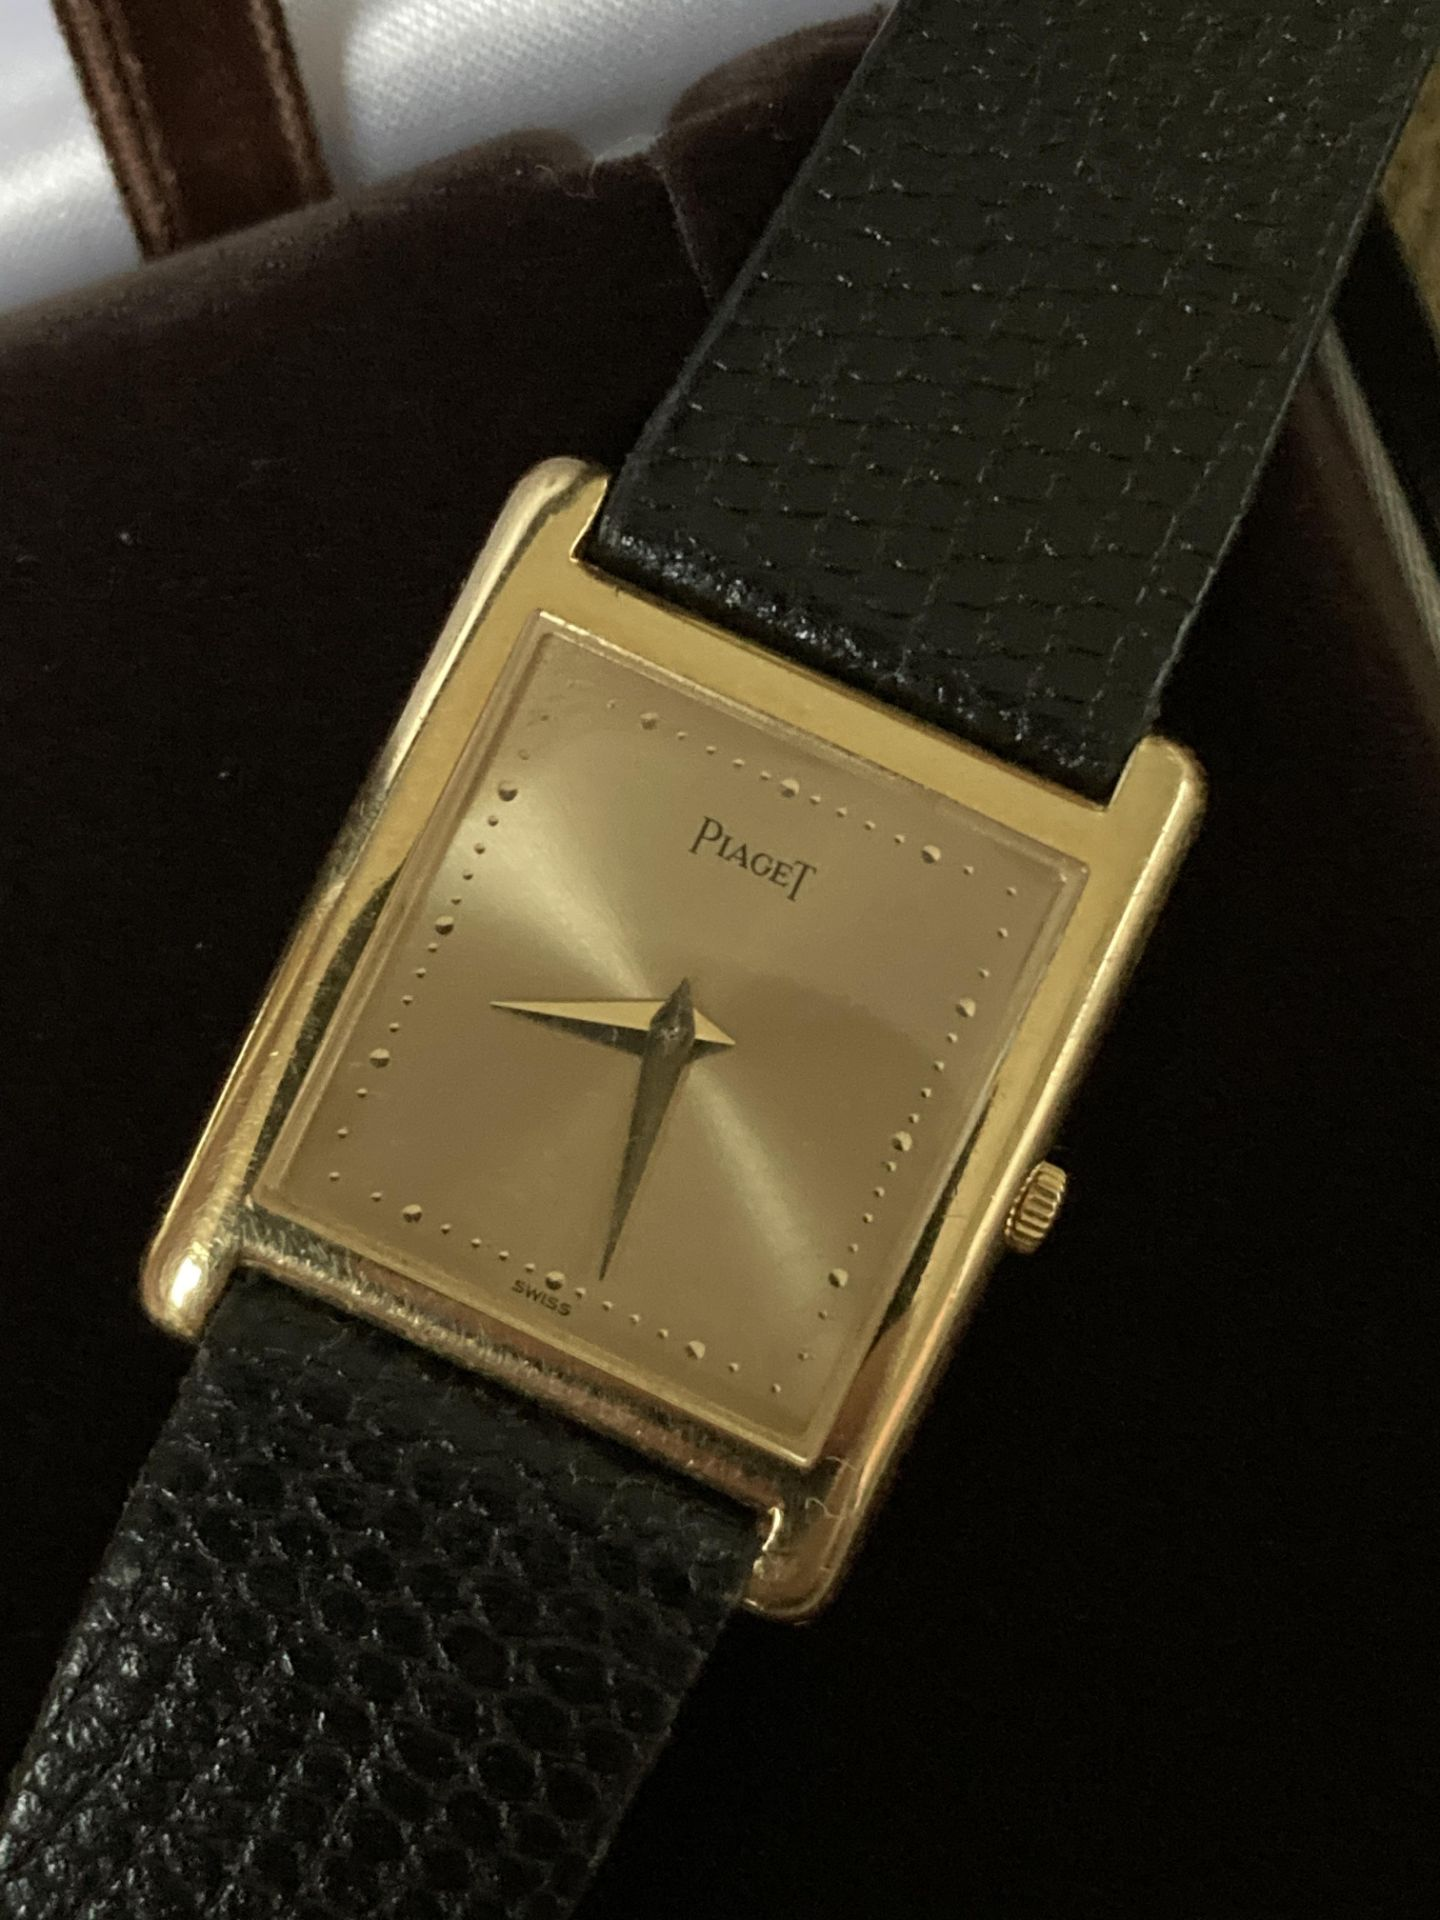 GOLD PIAGET WATCH - 22MM - Image 4 of 6